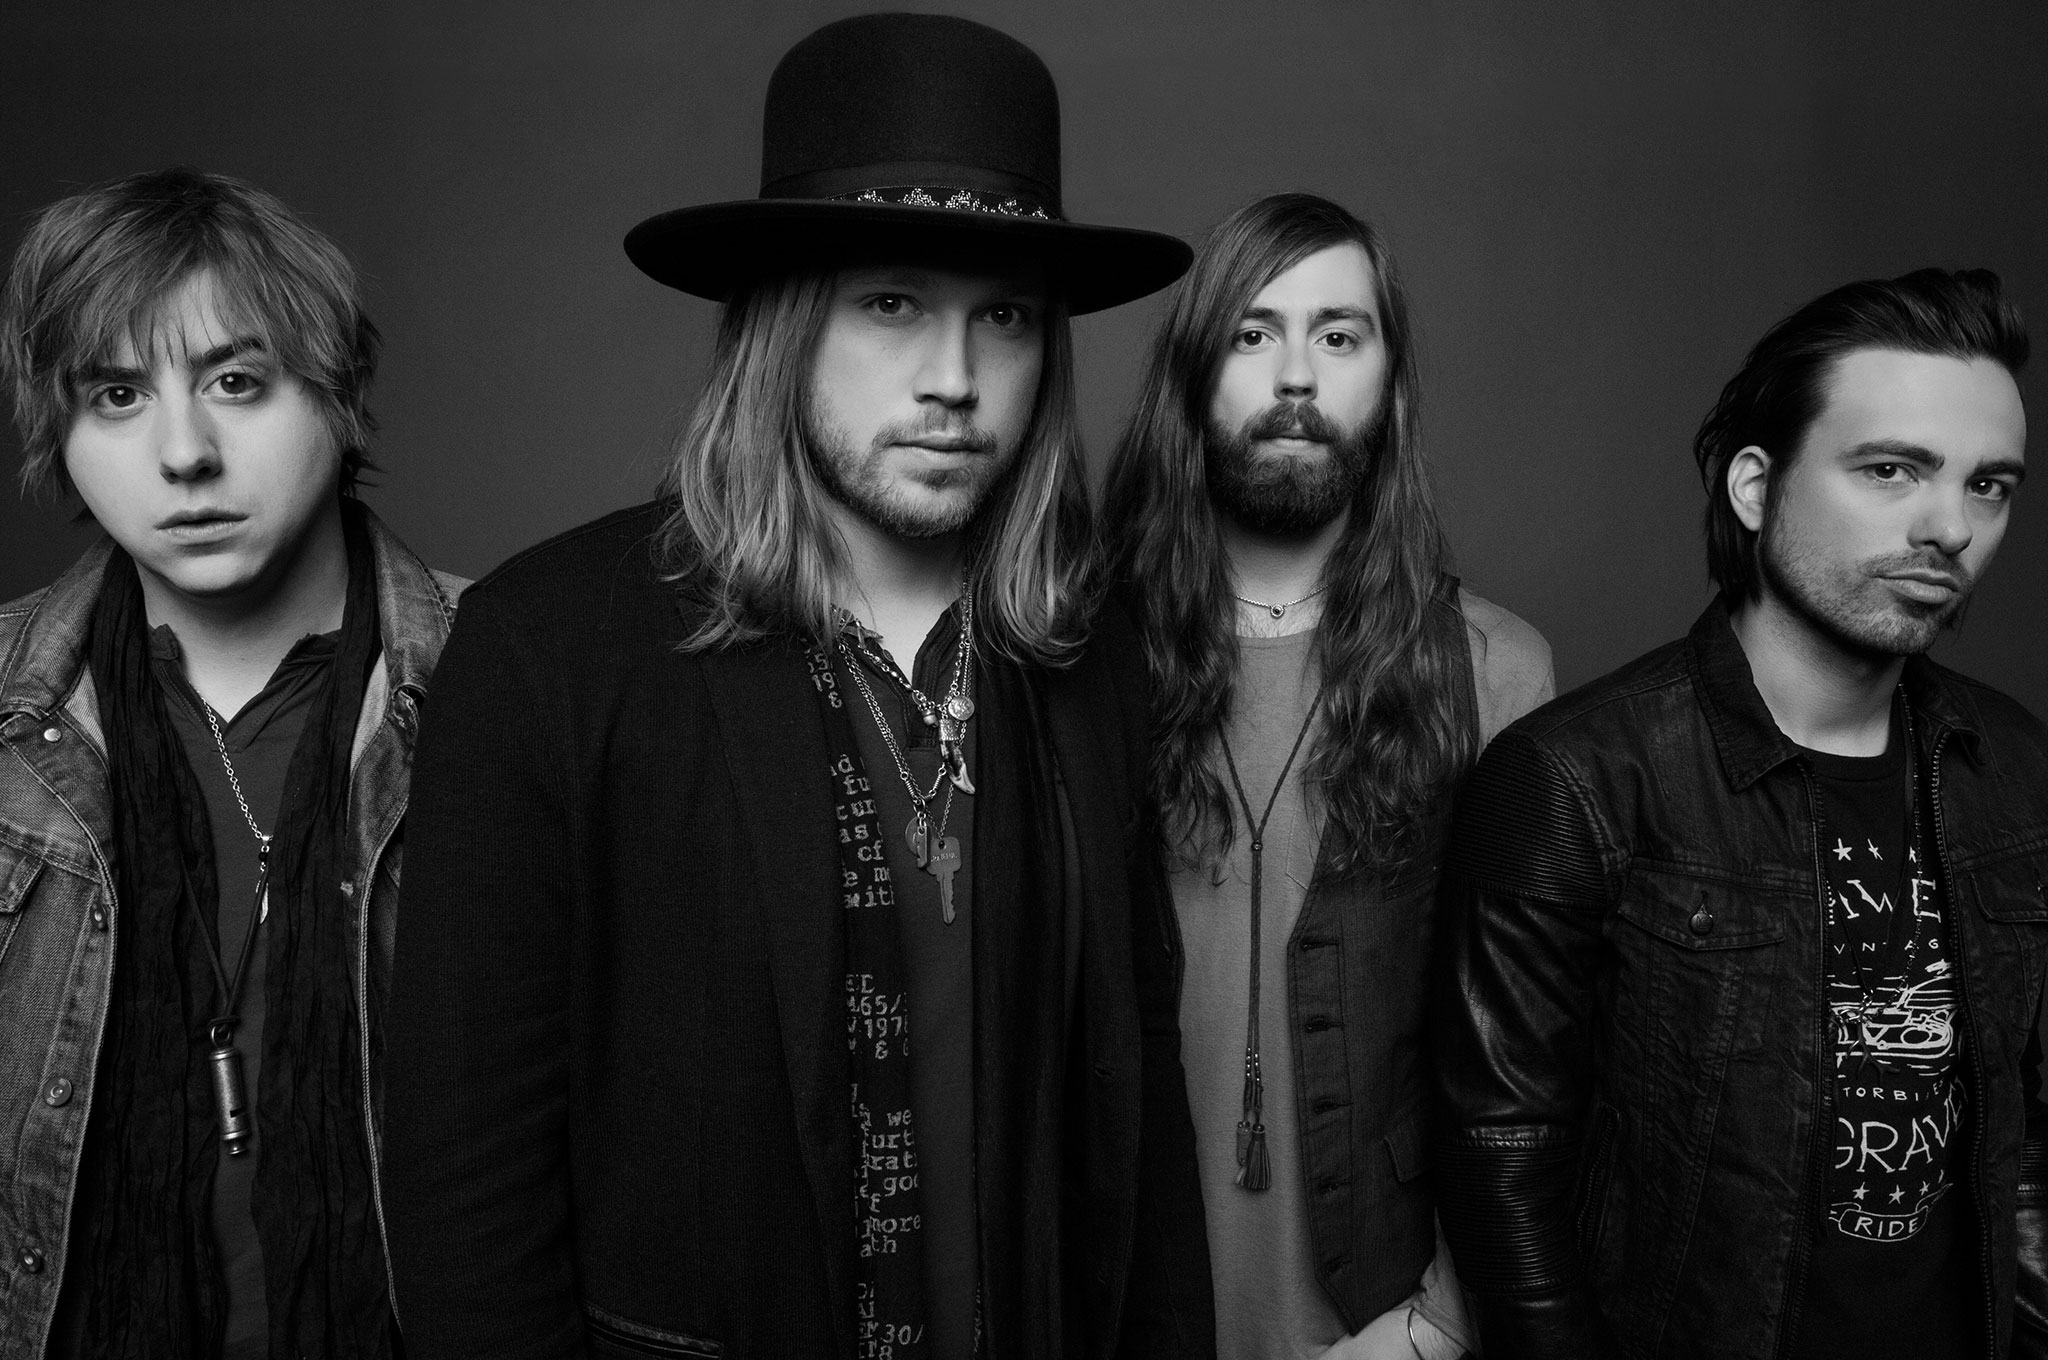 a-thousand-horses-23-11-2016andrew